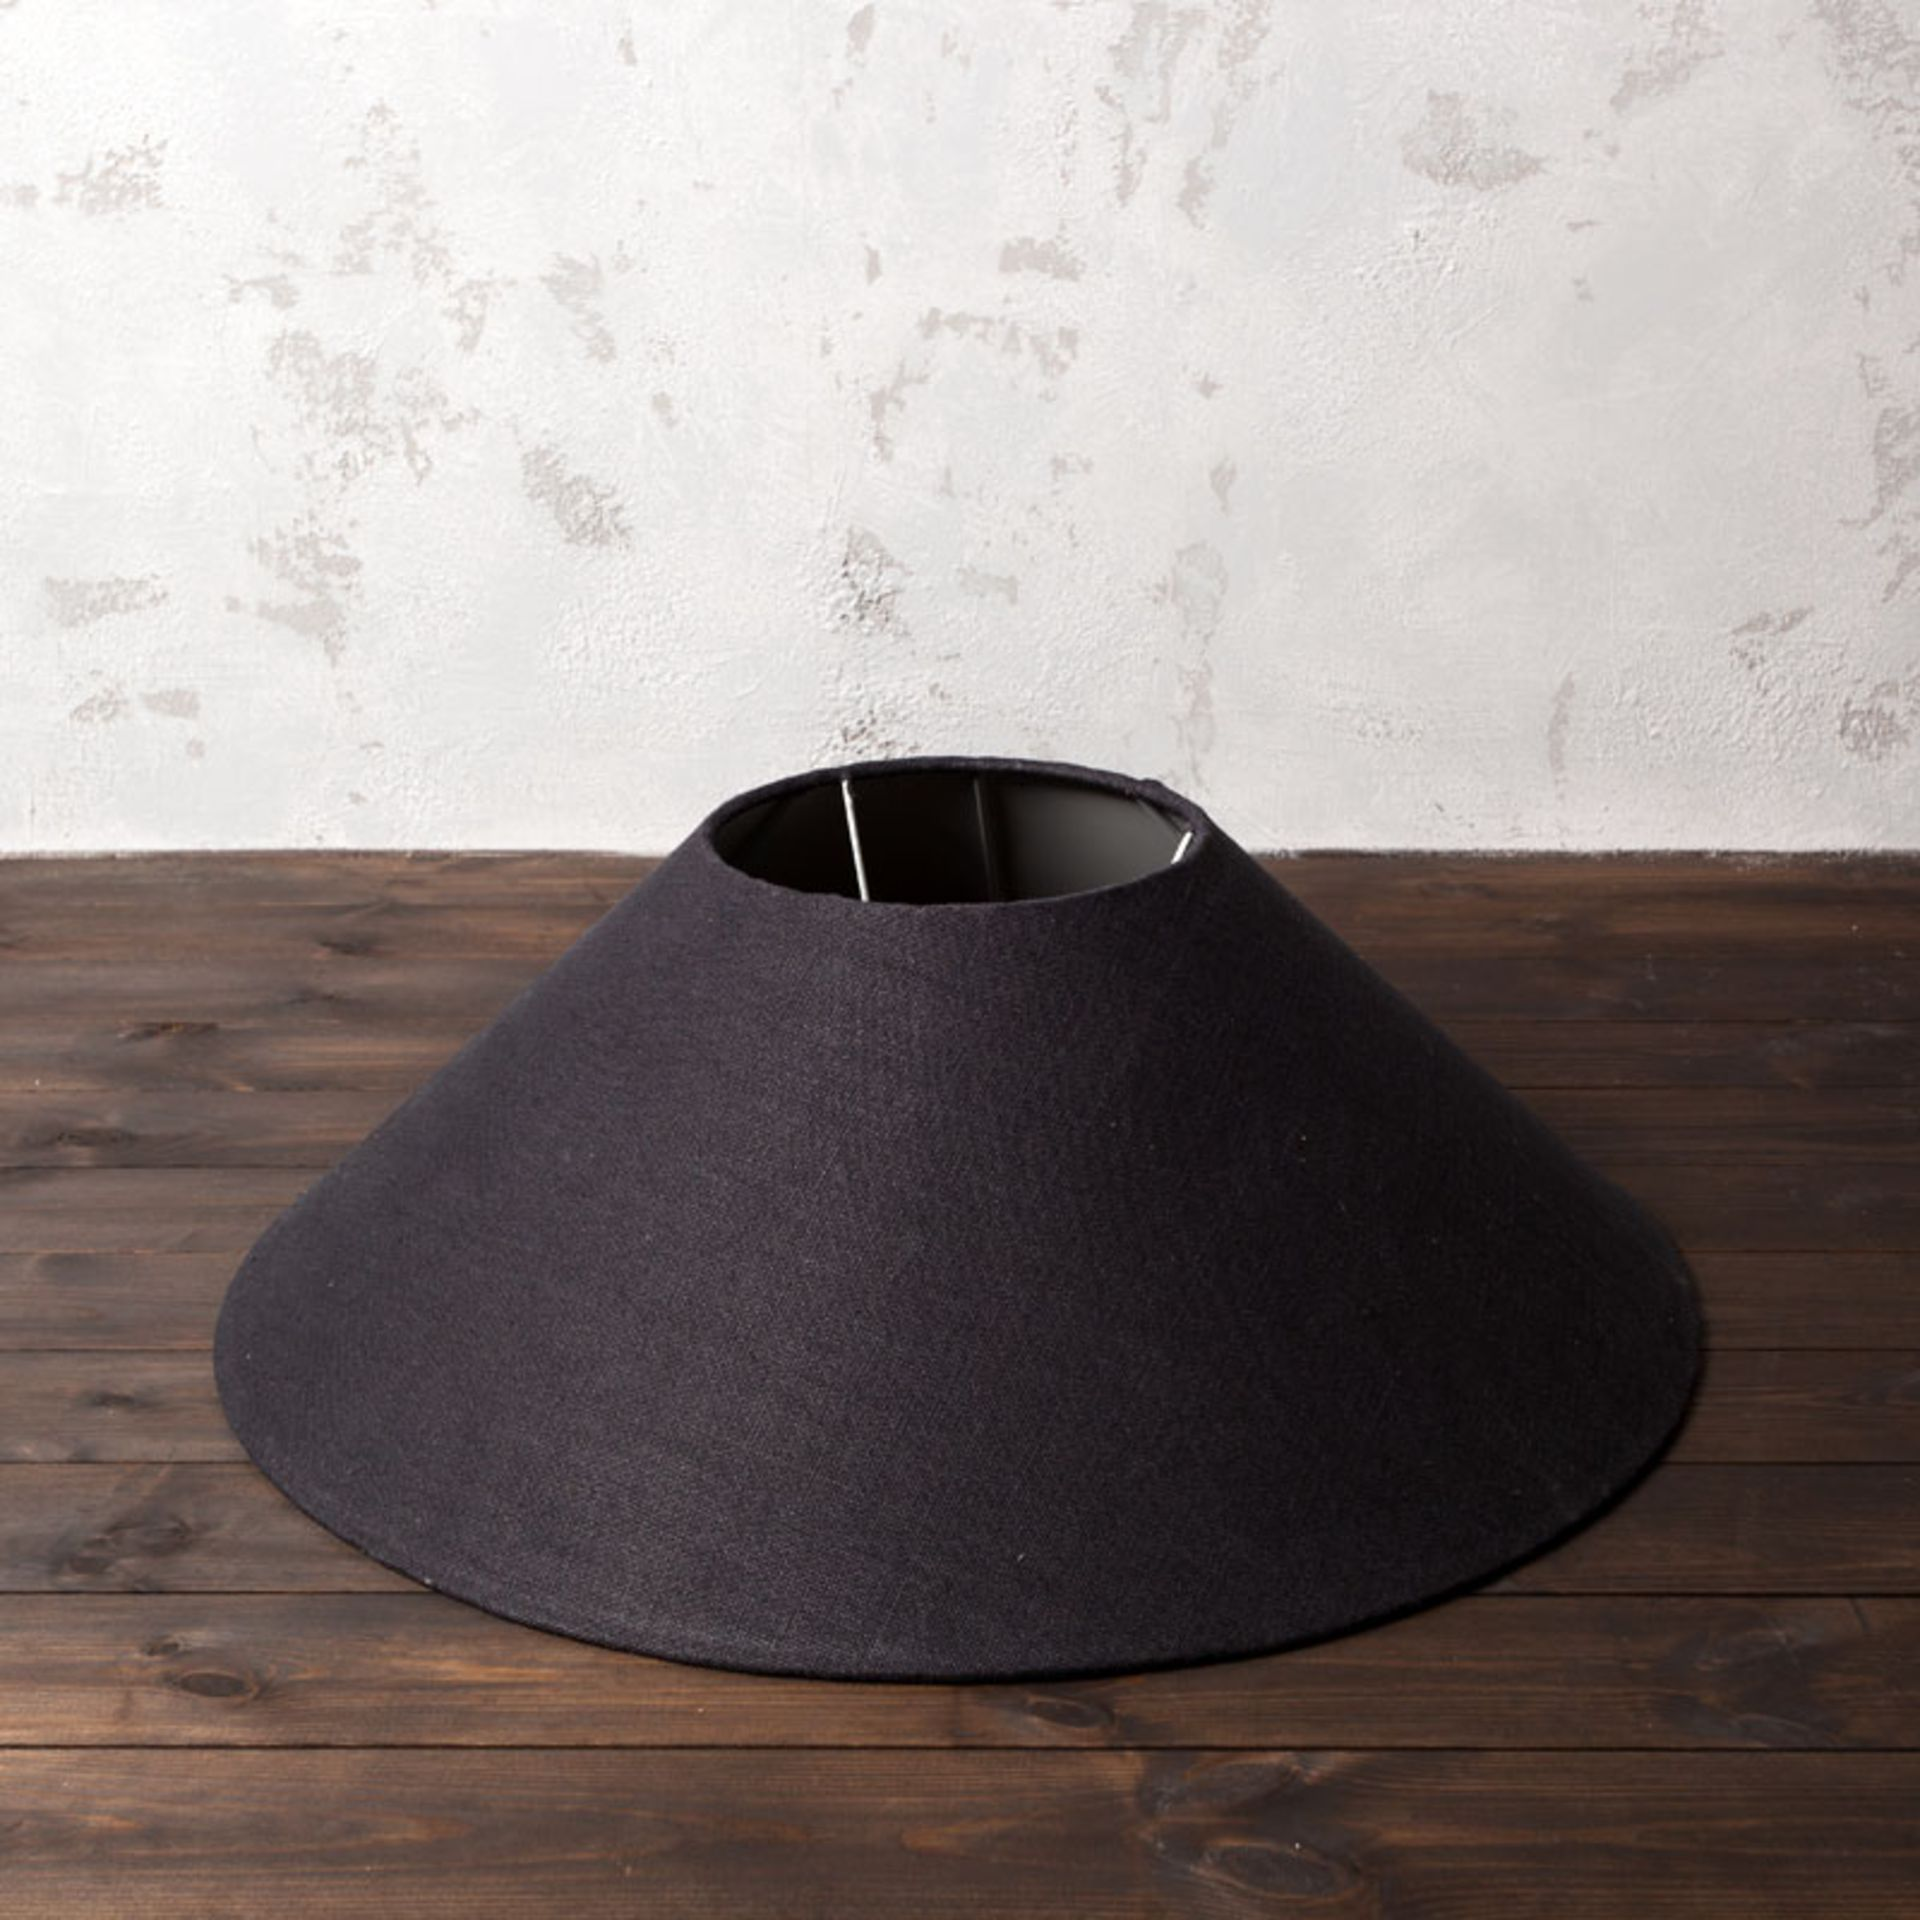 Lot 98 - Coolie Shade Hemp Charcoal Black The Rounded Shape And Opal Interiors Of These Coolie Shades